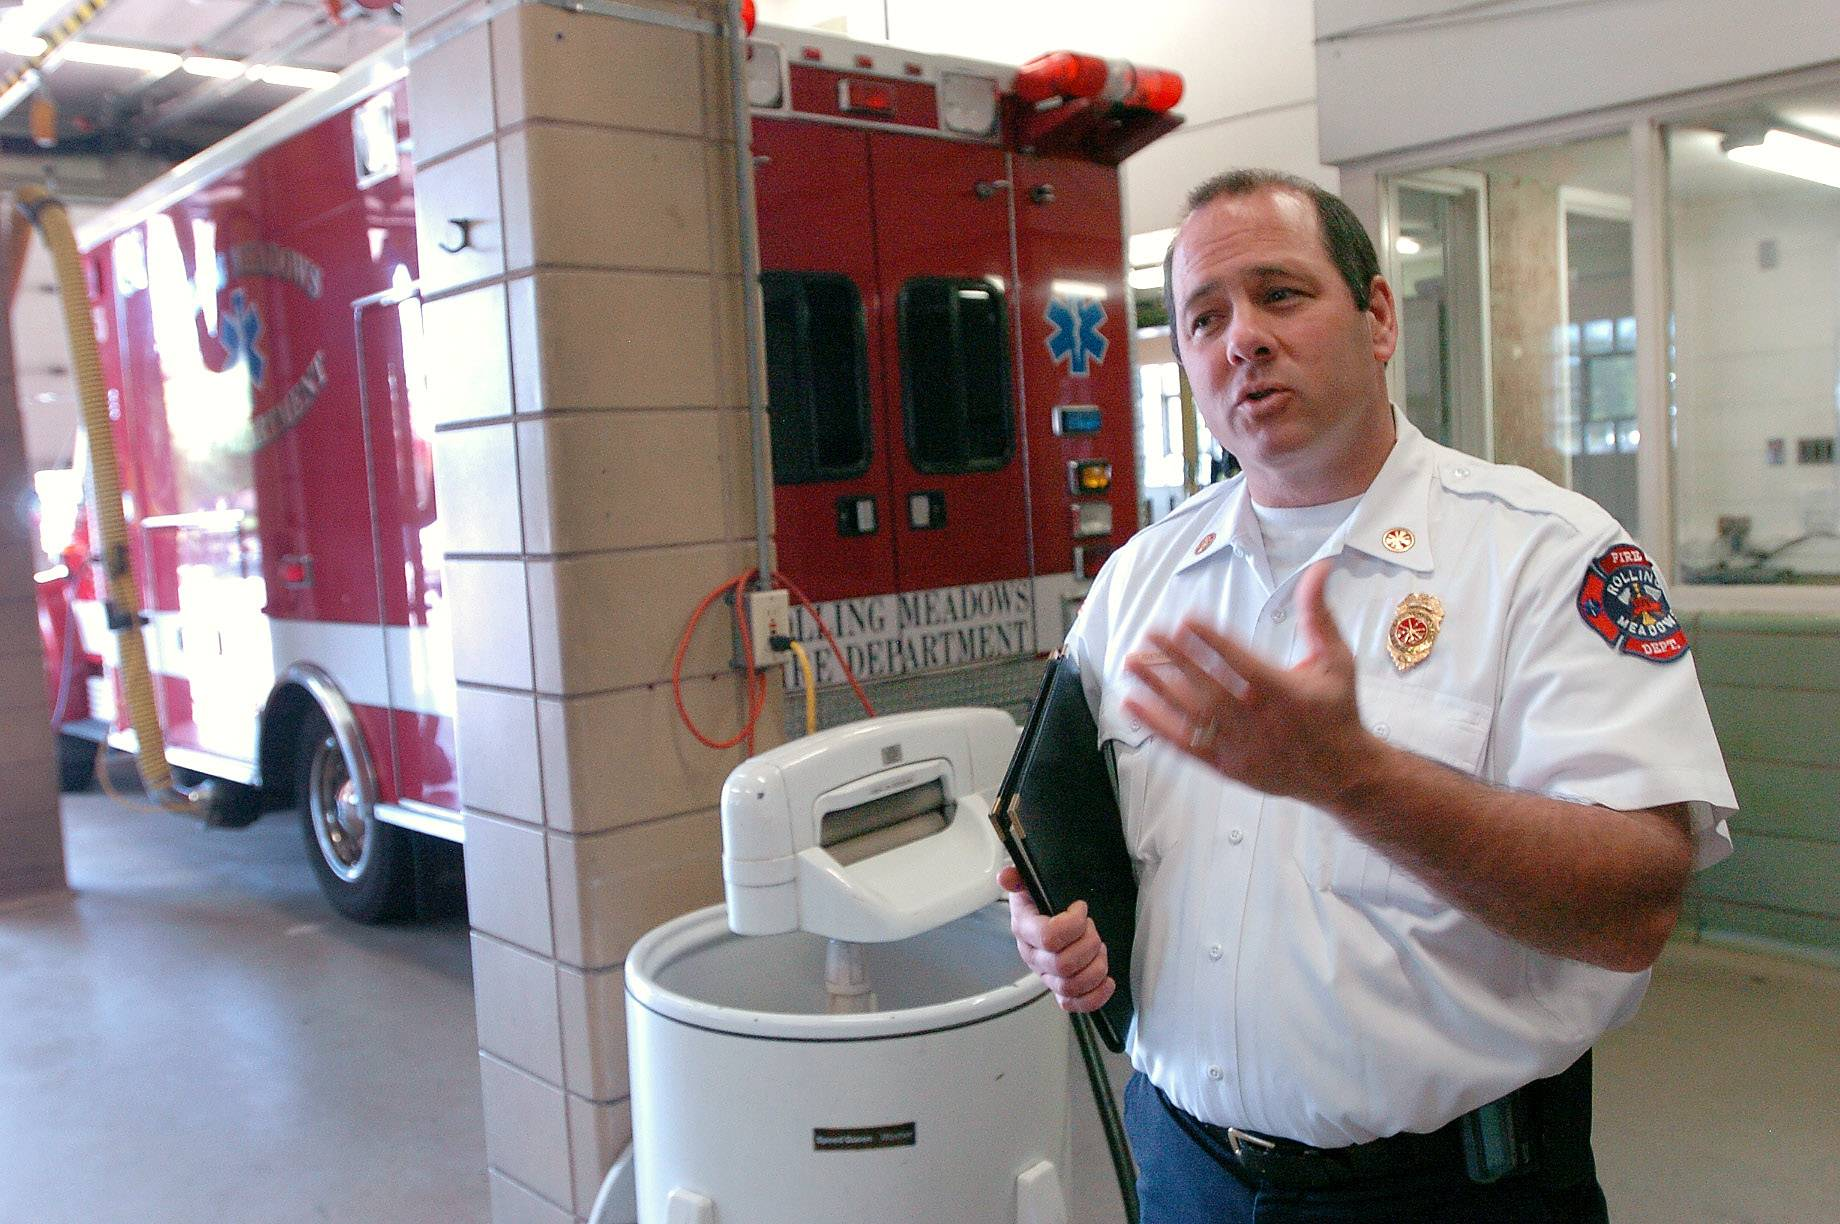 Scott Franzgrote was promoted to Rolling Meadows fire chief in 2012. He will be retiring at the end of September.